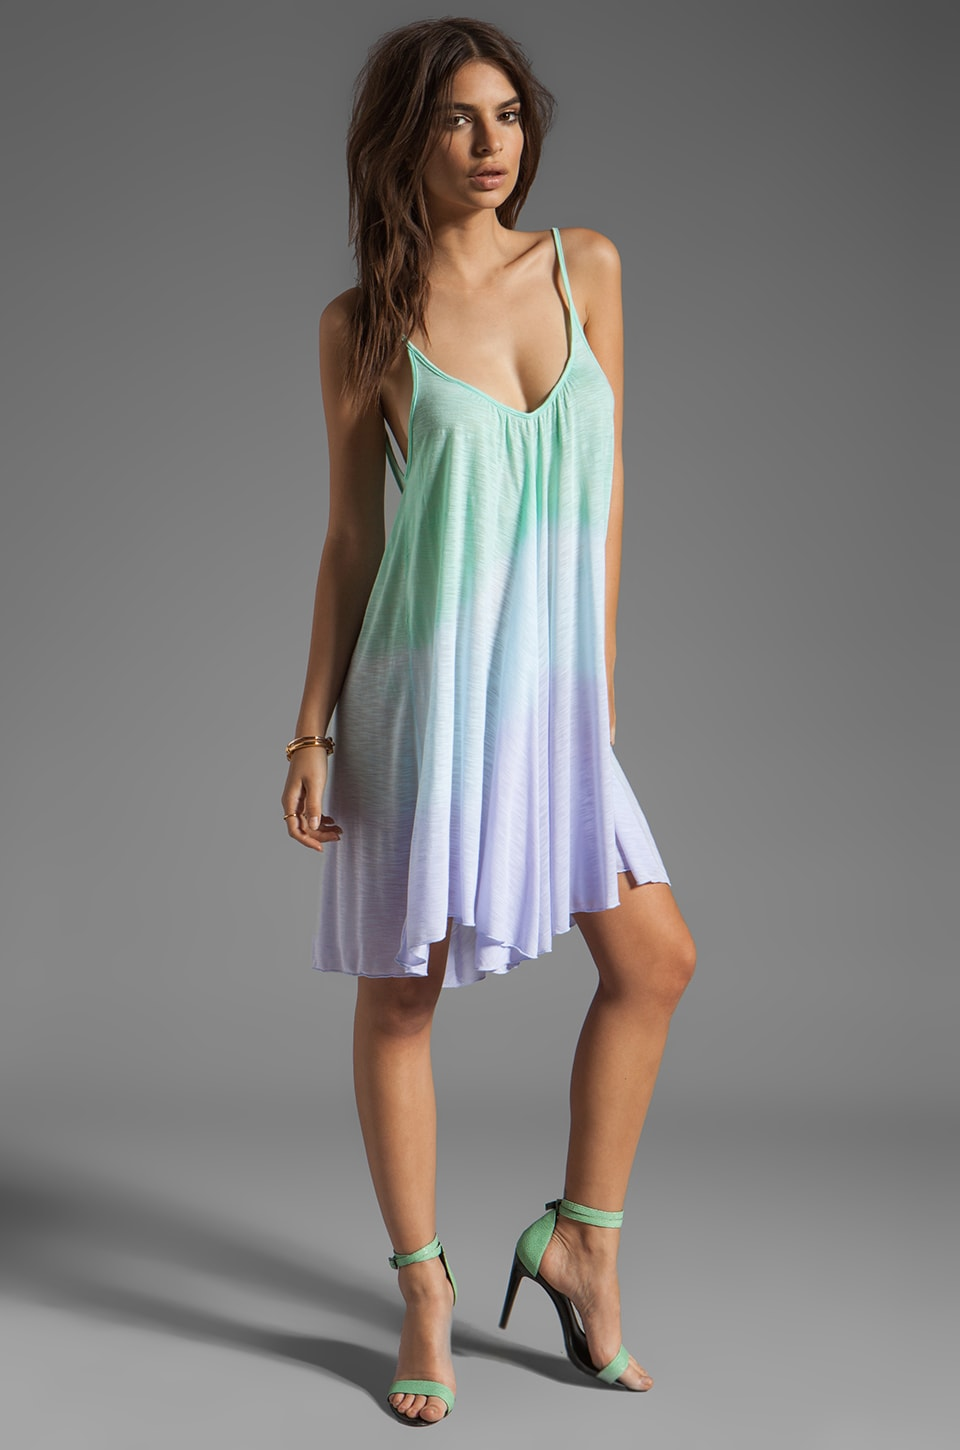 Blue Life Tie Dye V Neck Babydoll Dress in Mint/Ocean Breeze